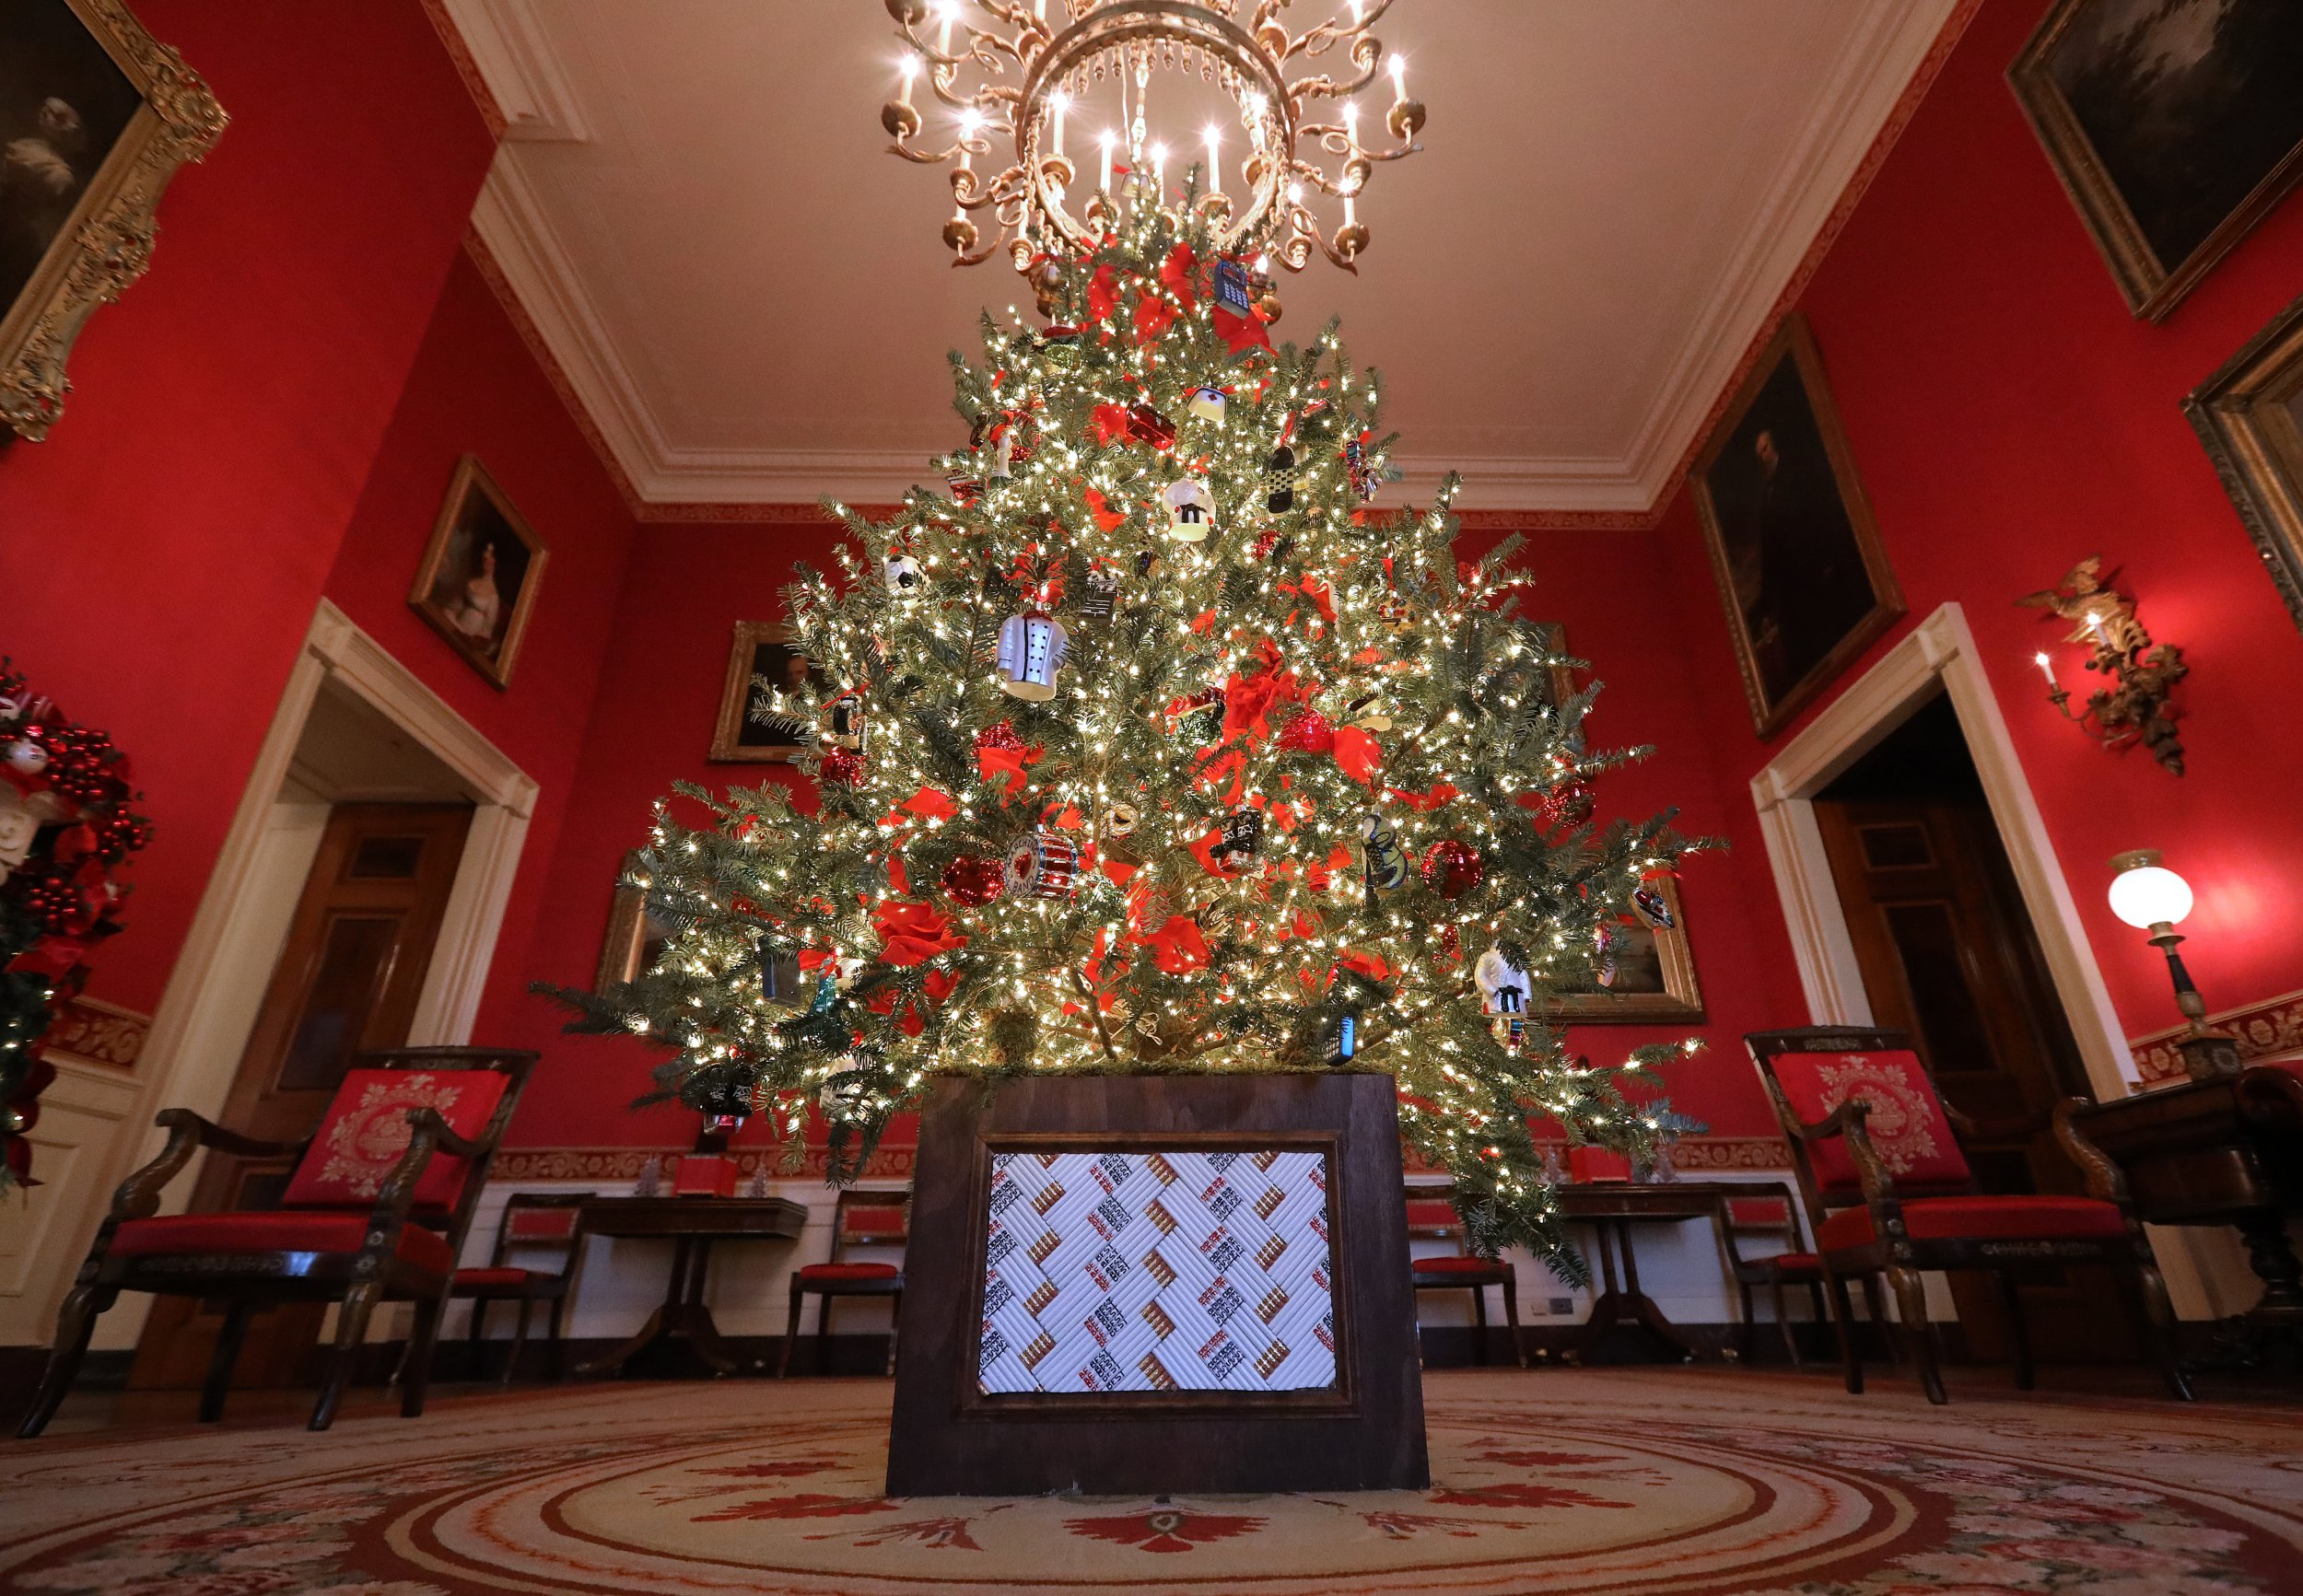 Melania Trump's Christmas Decorations Mocked Online as 'Blood Trees' From 'The Shining'